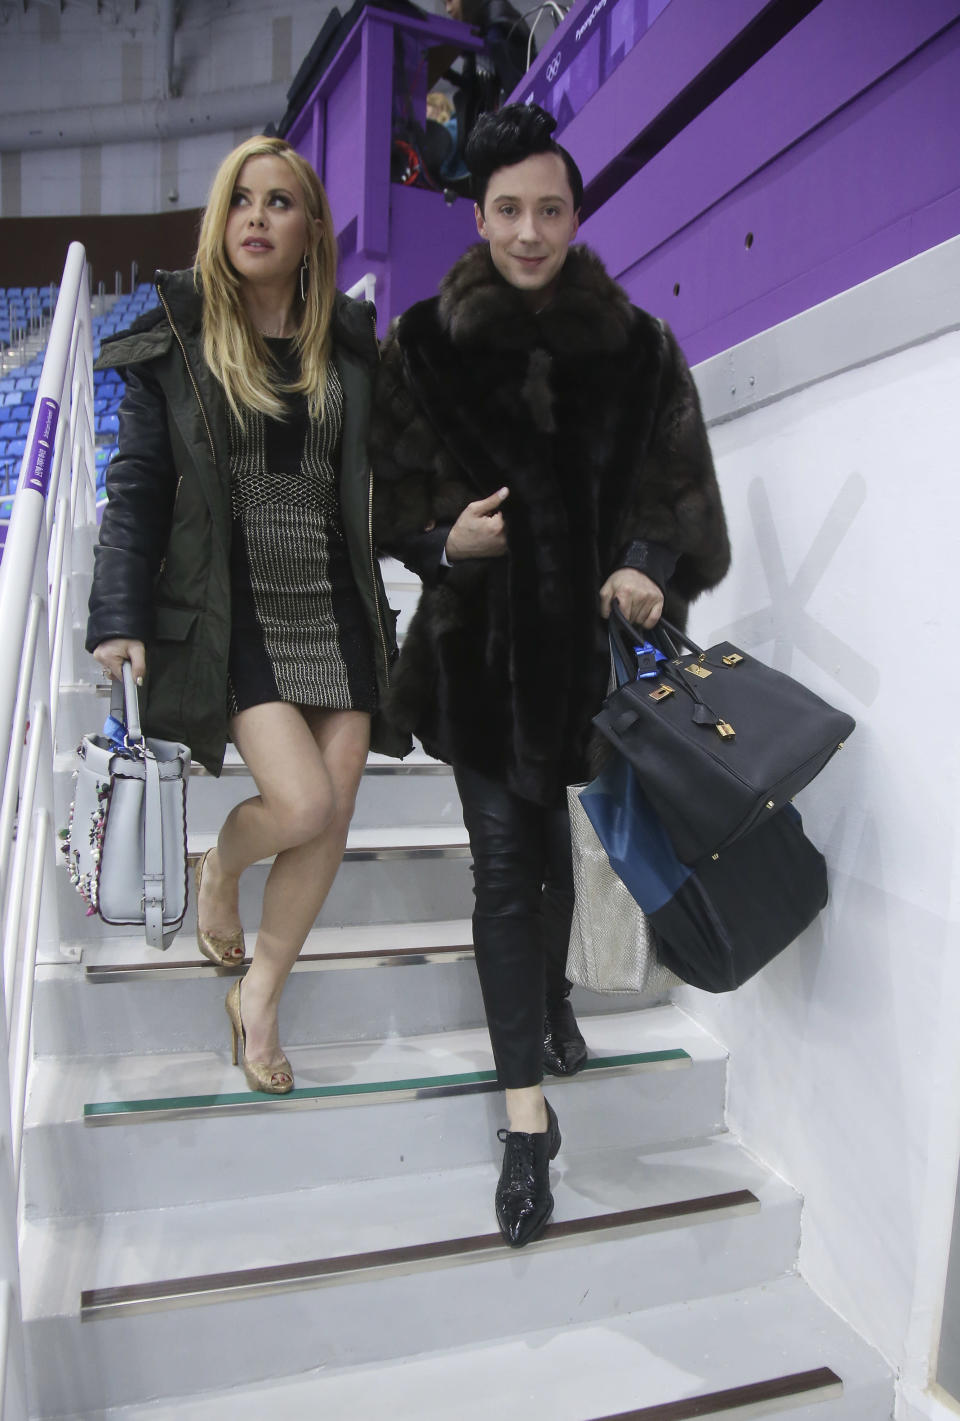 <p>Tara Lipinski and Johnny Weir pose after commentating for NBC Sports the Figure Skating Team Event during the 2018 Winter Olympic Games at Gangneung Ice Arena on February 11, 2018 in Gangneung, Pyeongchang, South Korea. (Photo by Jean Catuffe/Getty Images) </p>